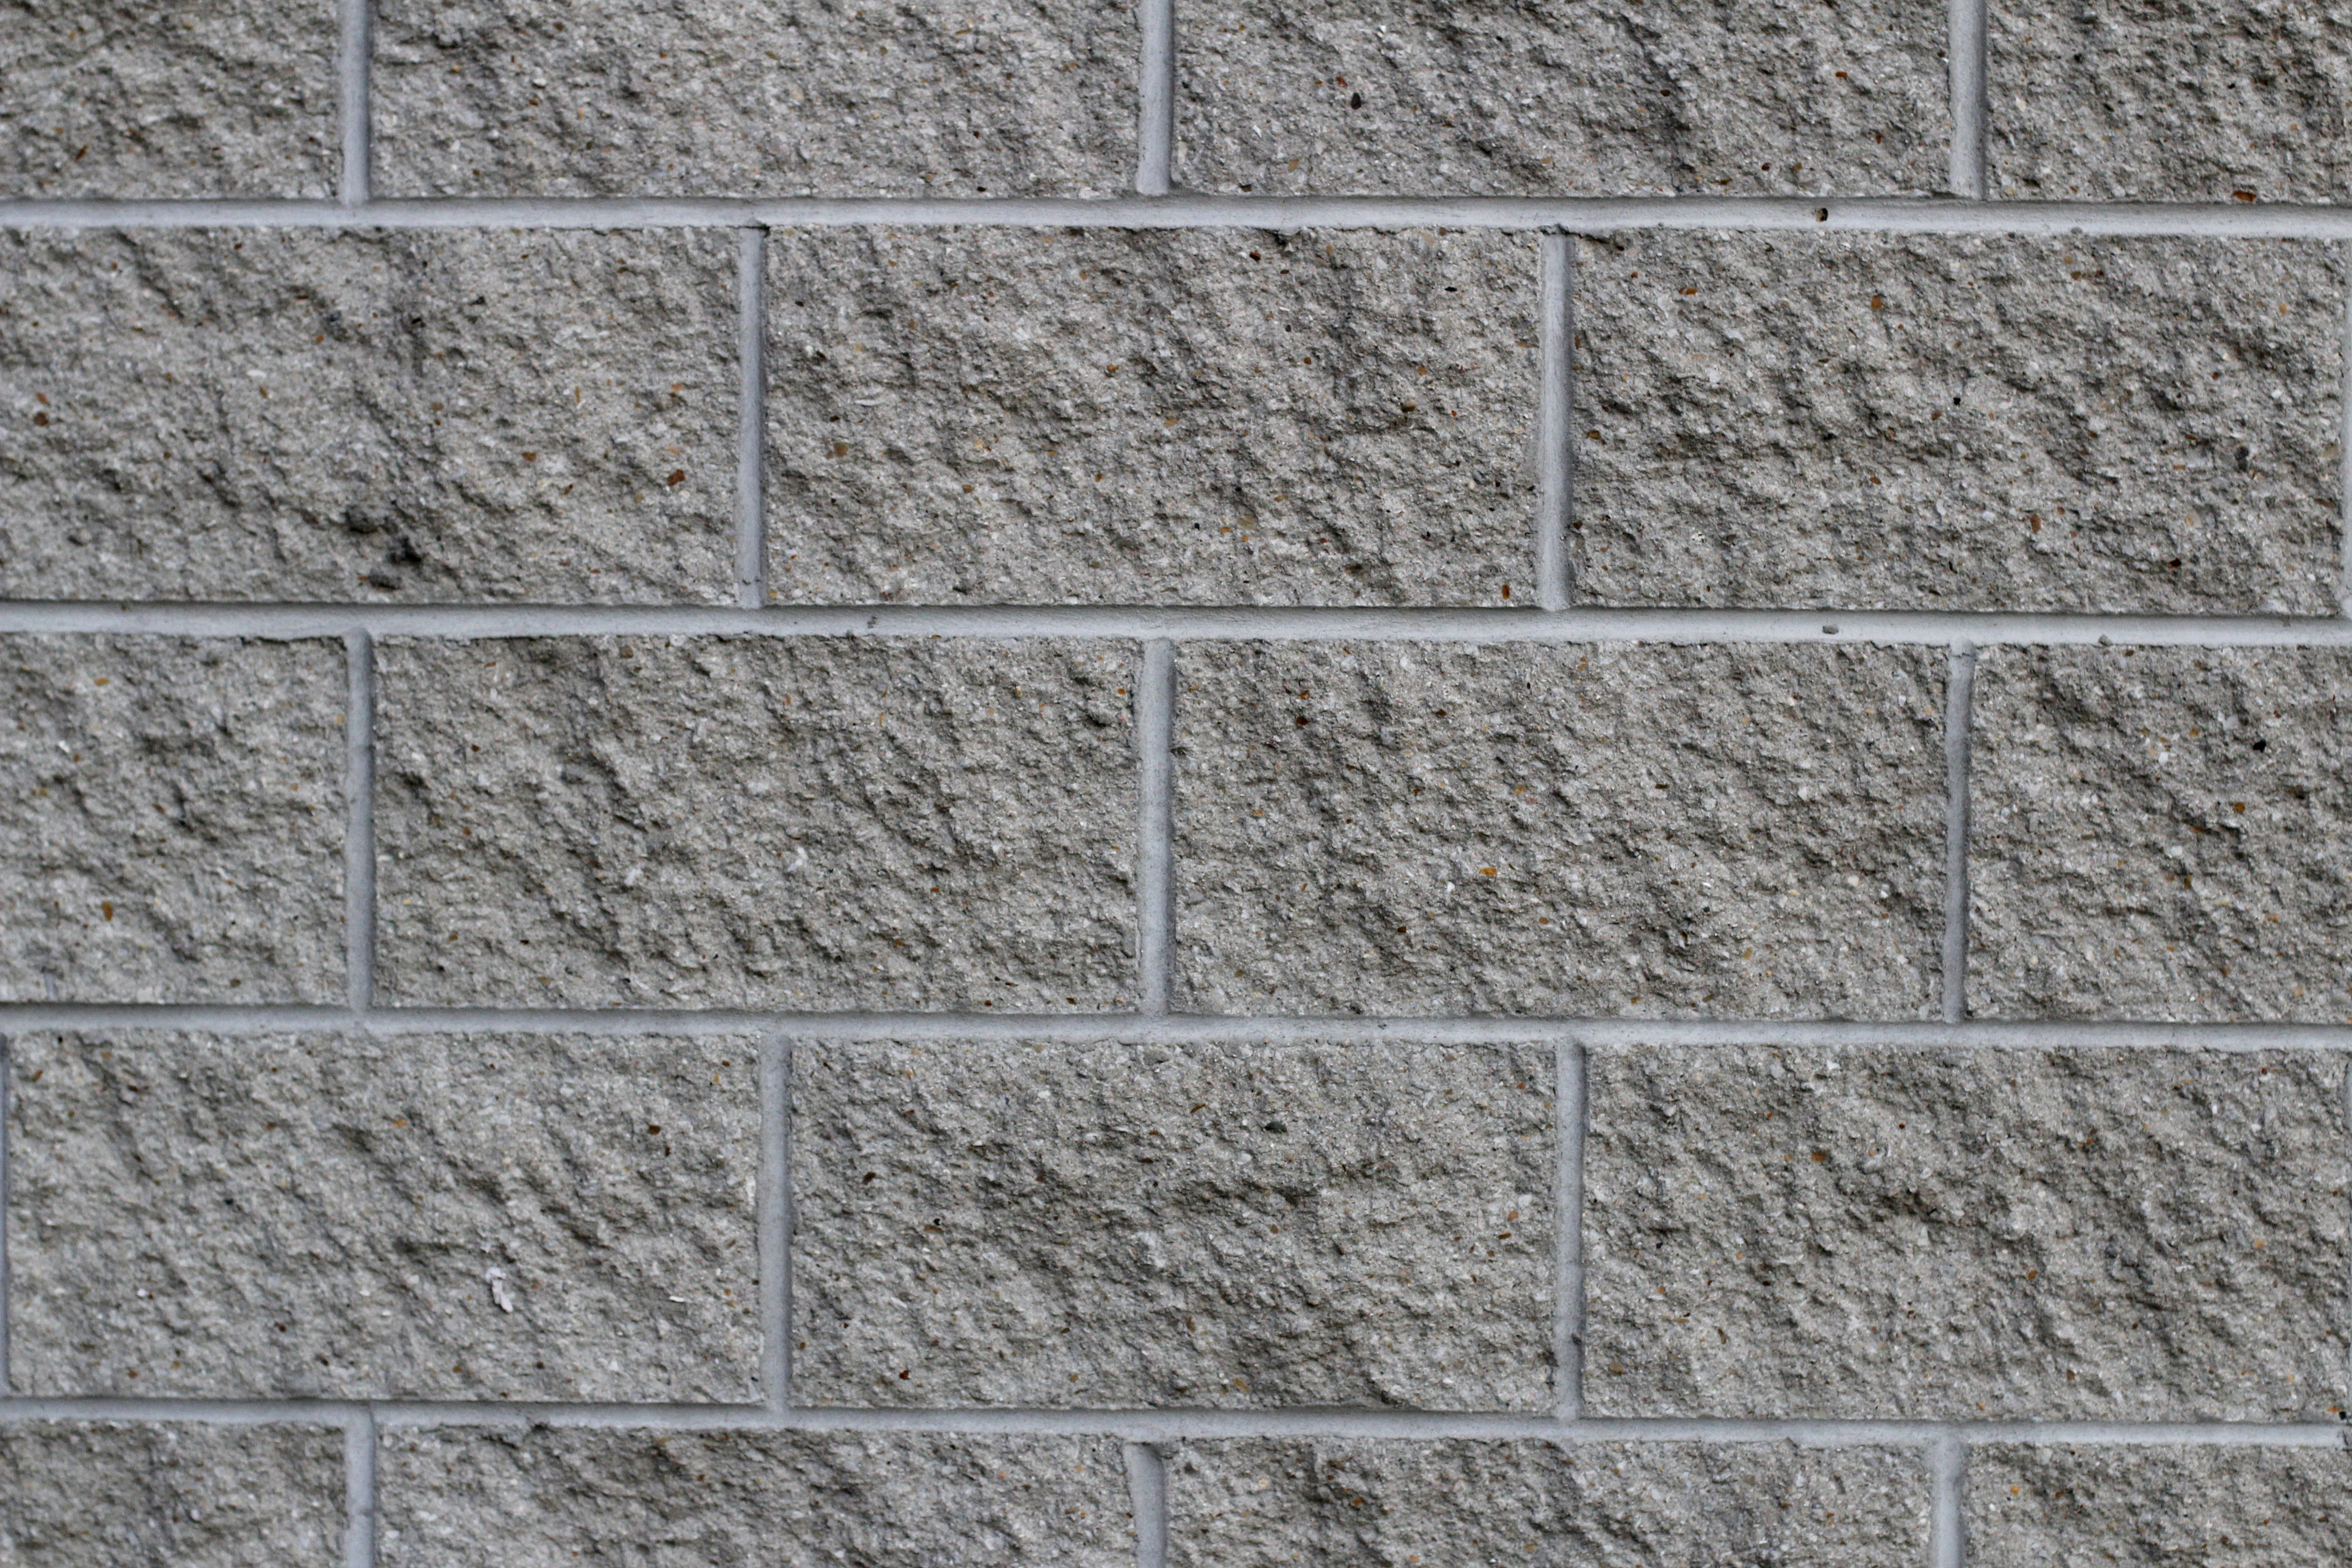 Wall Texture 6 by ScooterboyEx221 on DeviantArt